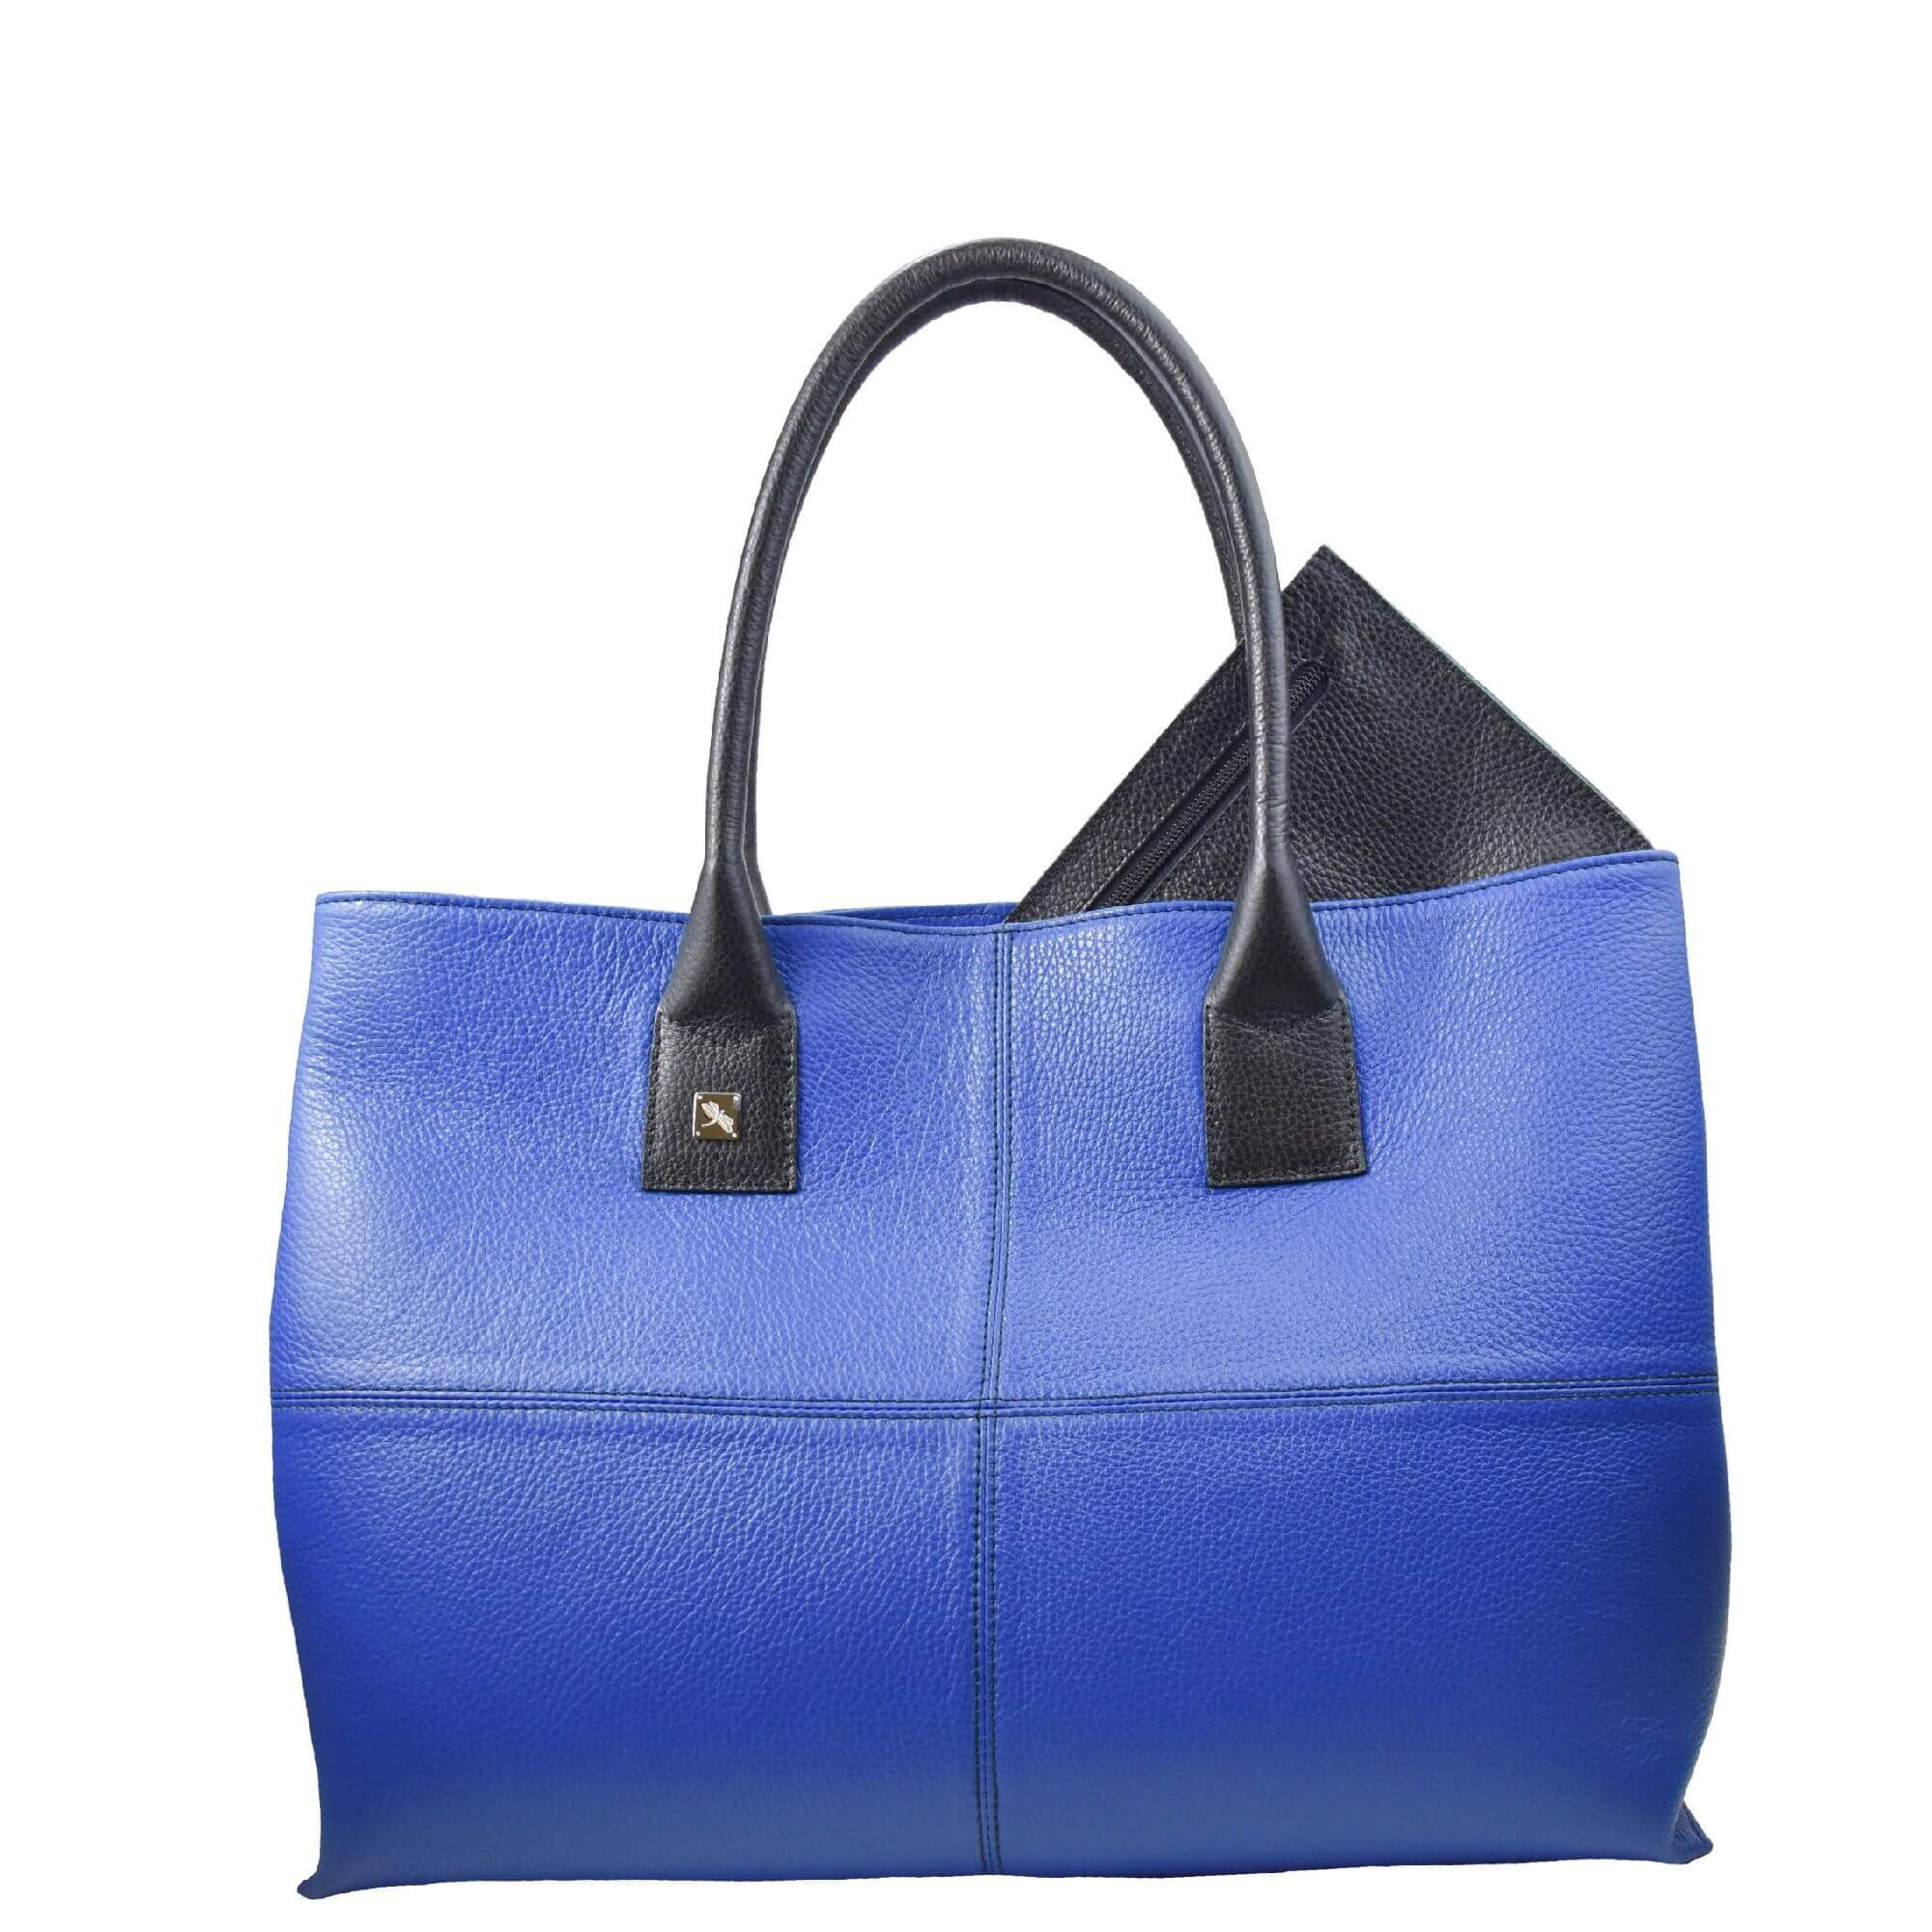 blue and black leather tote bag